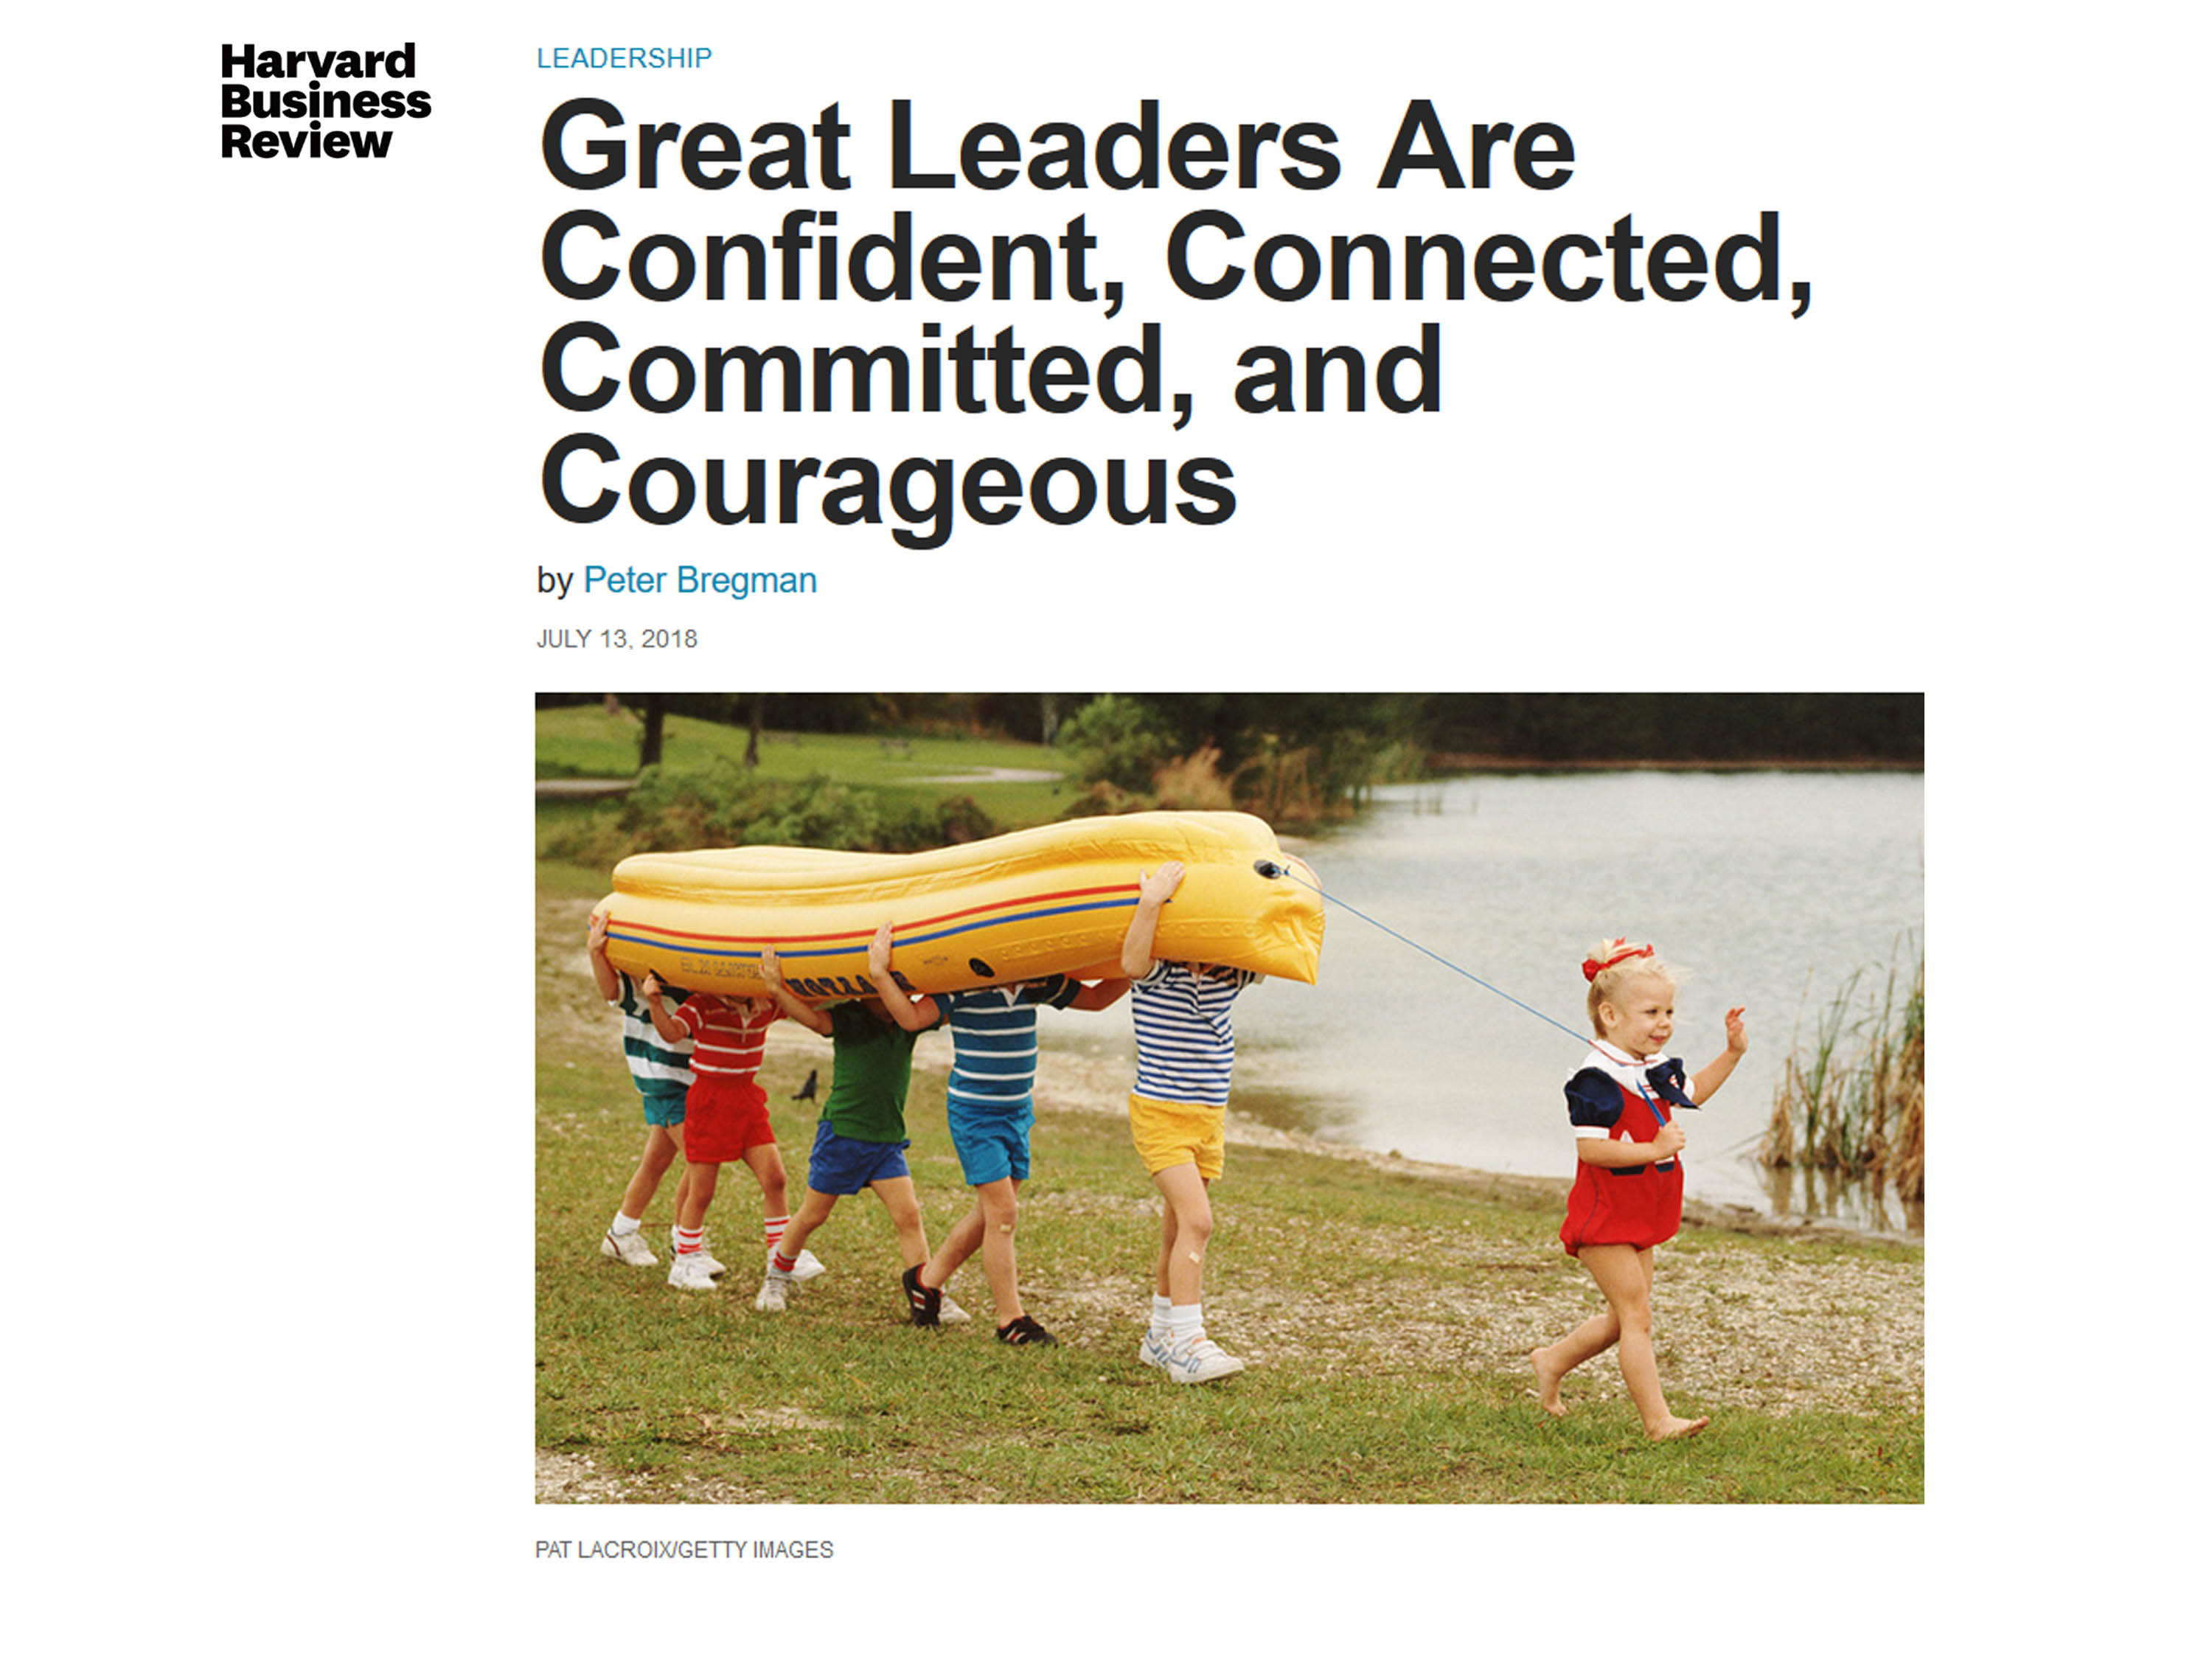 screen shot of HBR's article title illustrating alliteration with 4C's Confident, Connected, Committed, Courageous